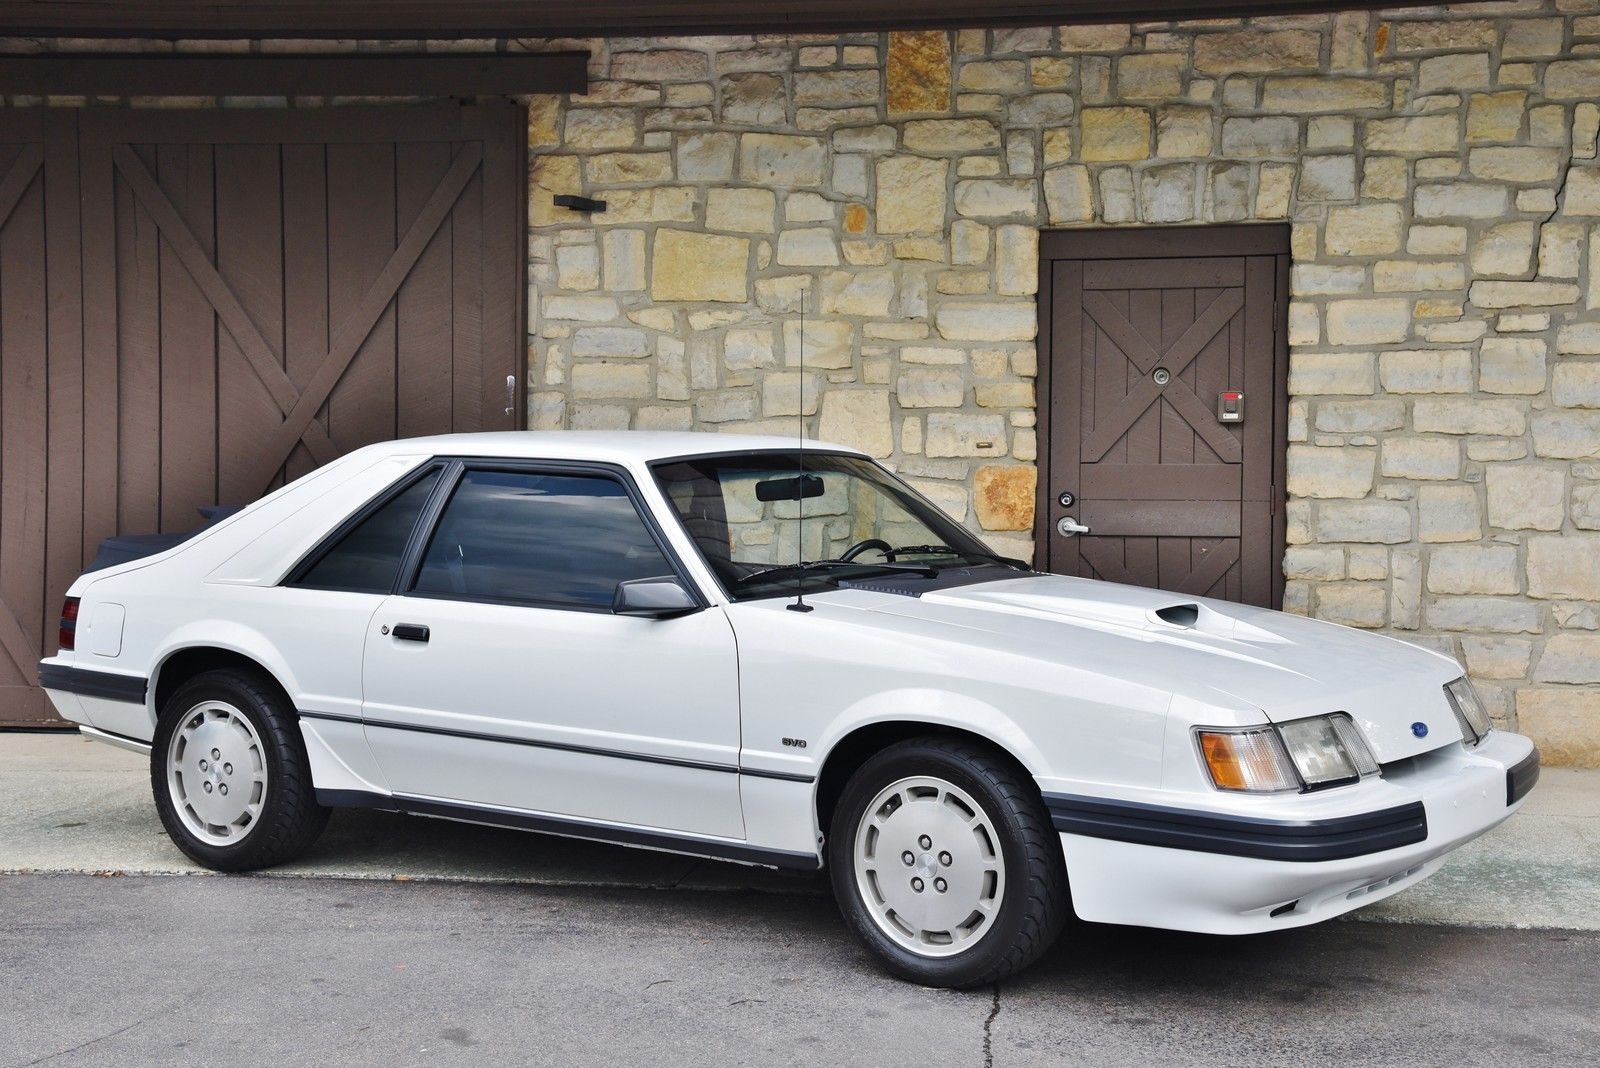 Mustang svo 1986 ford turbo low mileage turbo tuesday